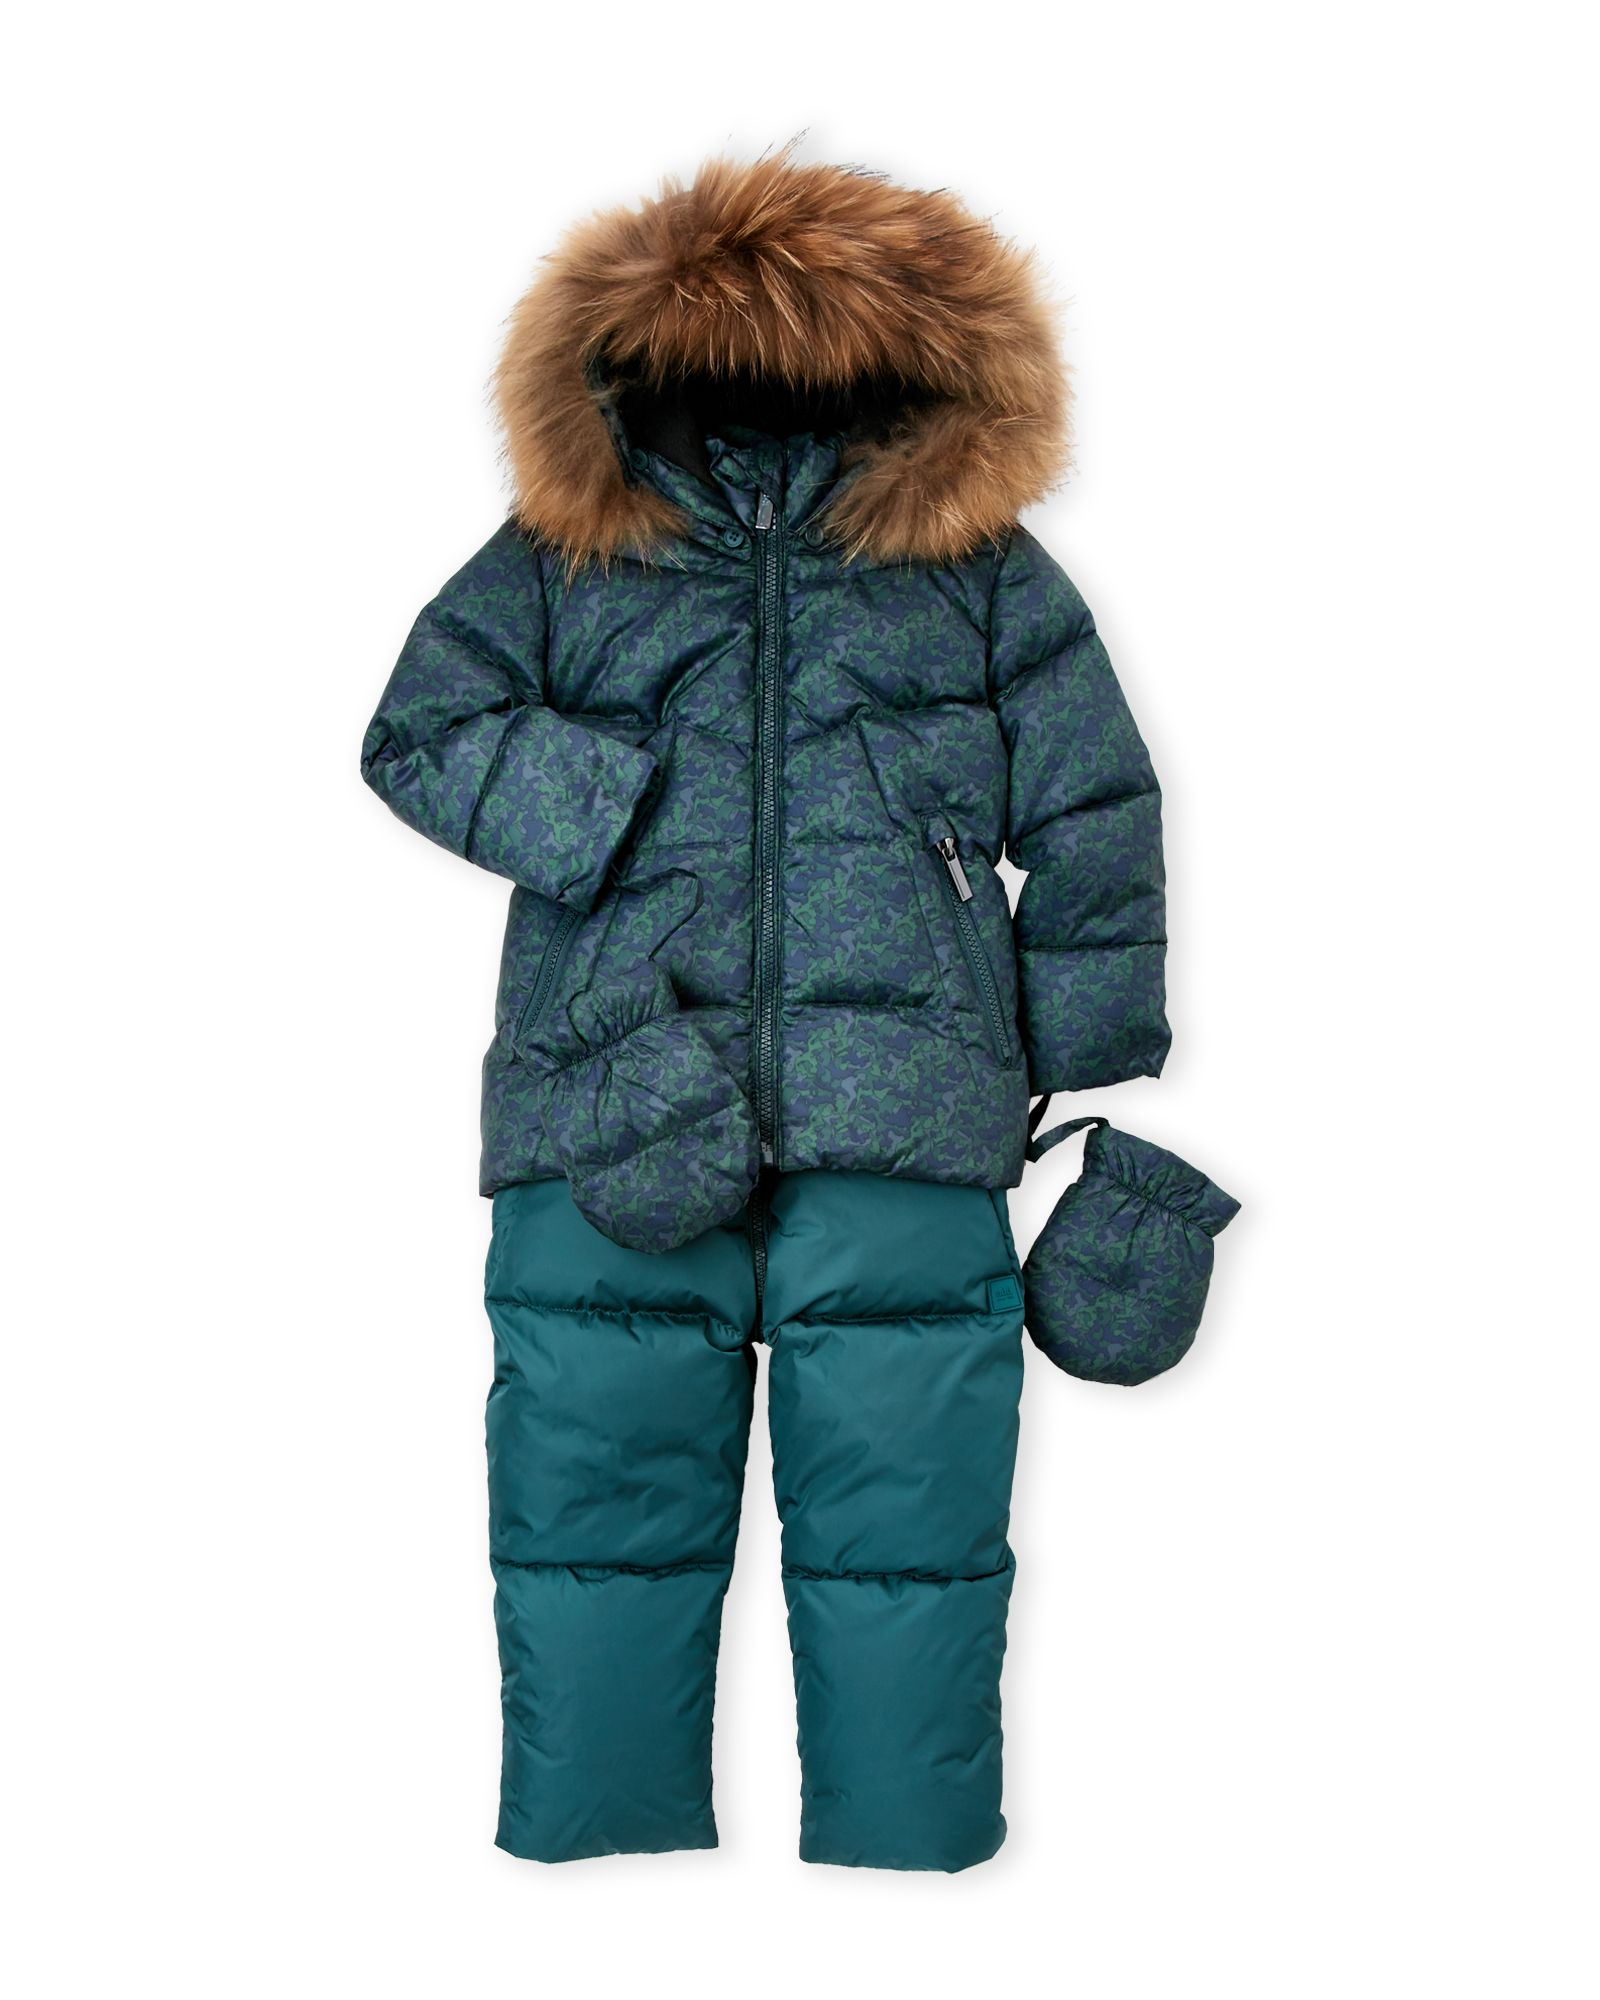 35320079002e Add (Infant Boys) 2fer Real Fur-Trim Quilted Down Jacket   Overalls ...